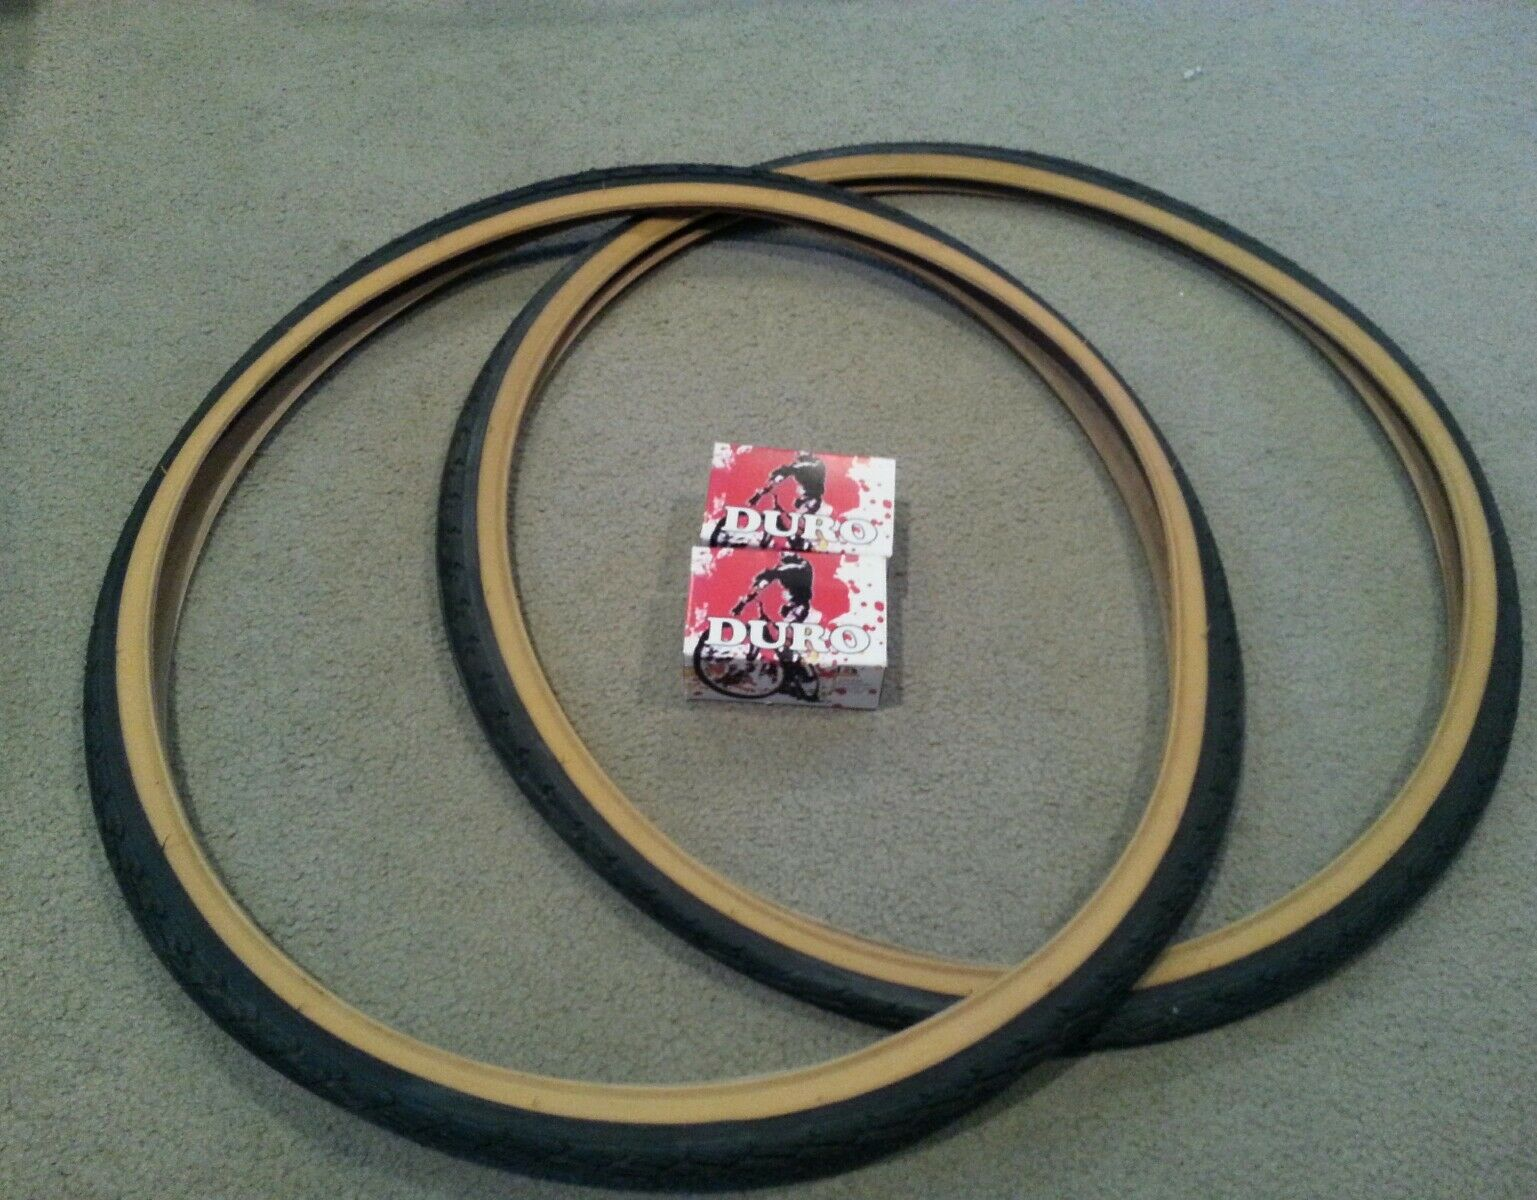 TWO(2) DURO 700X35C BICYCLE TIRES GUMWALL + 2 TUBES ROAD FIXIE BICYCLES